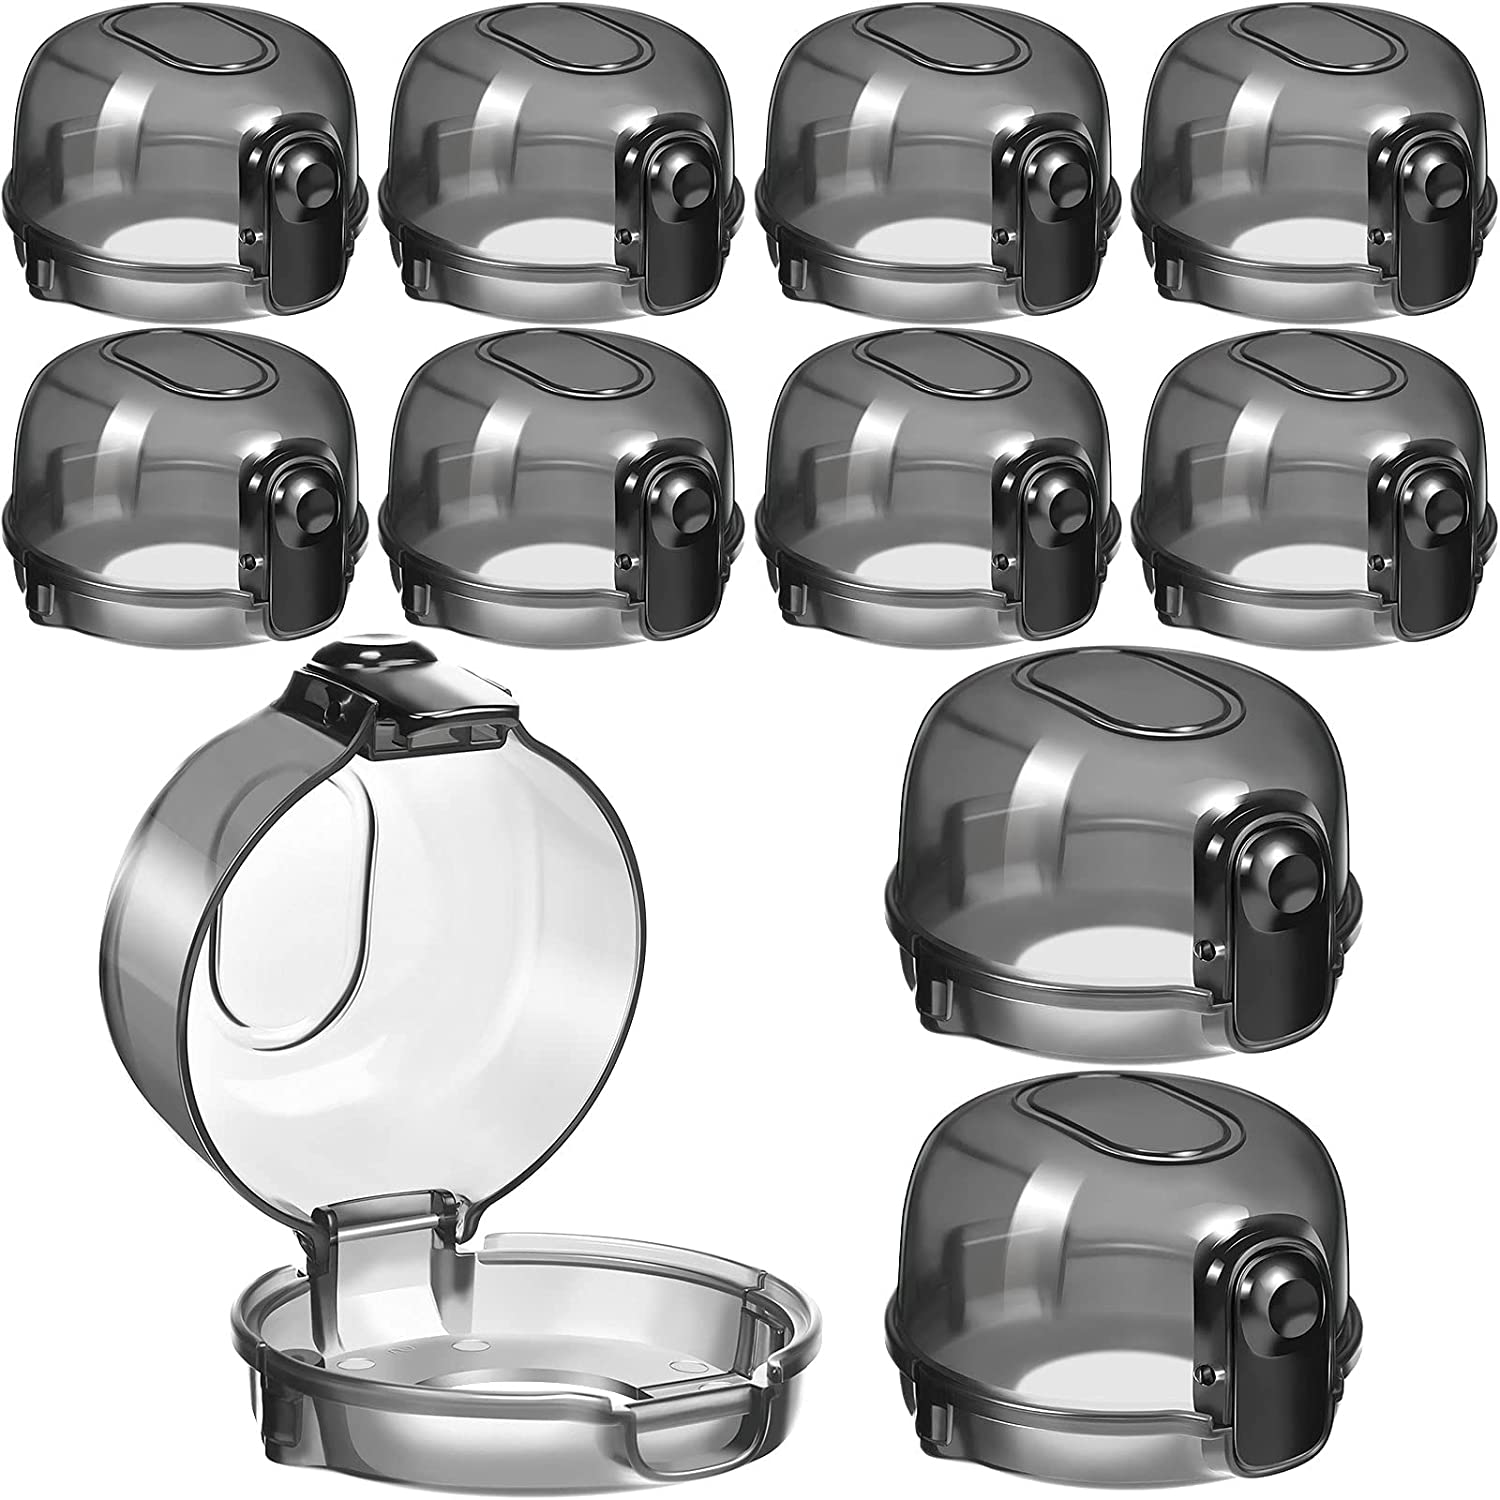 10 Pieces Kitchen Stove Knob Covers, Child Safety Gas Stove Knob Covers, Stove Knob Covers Protection Locks for Kids Child Proofing